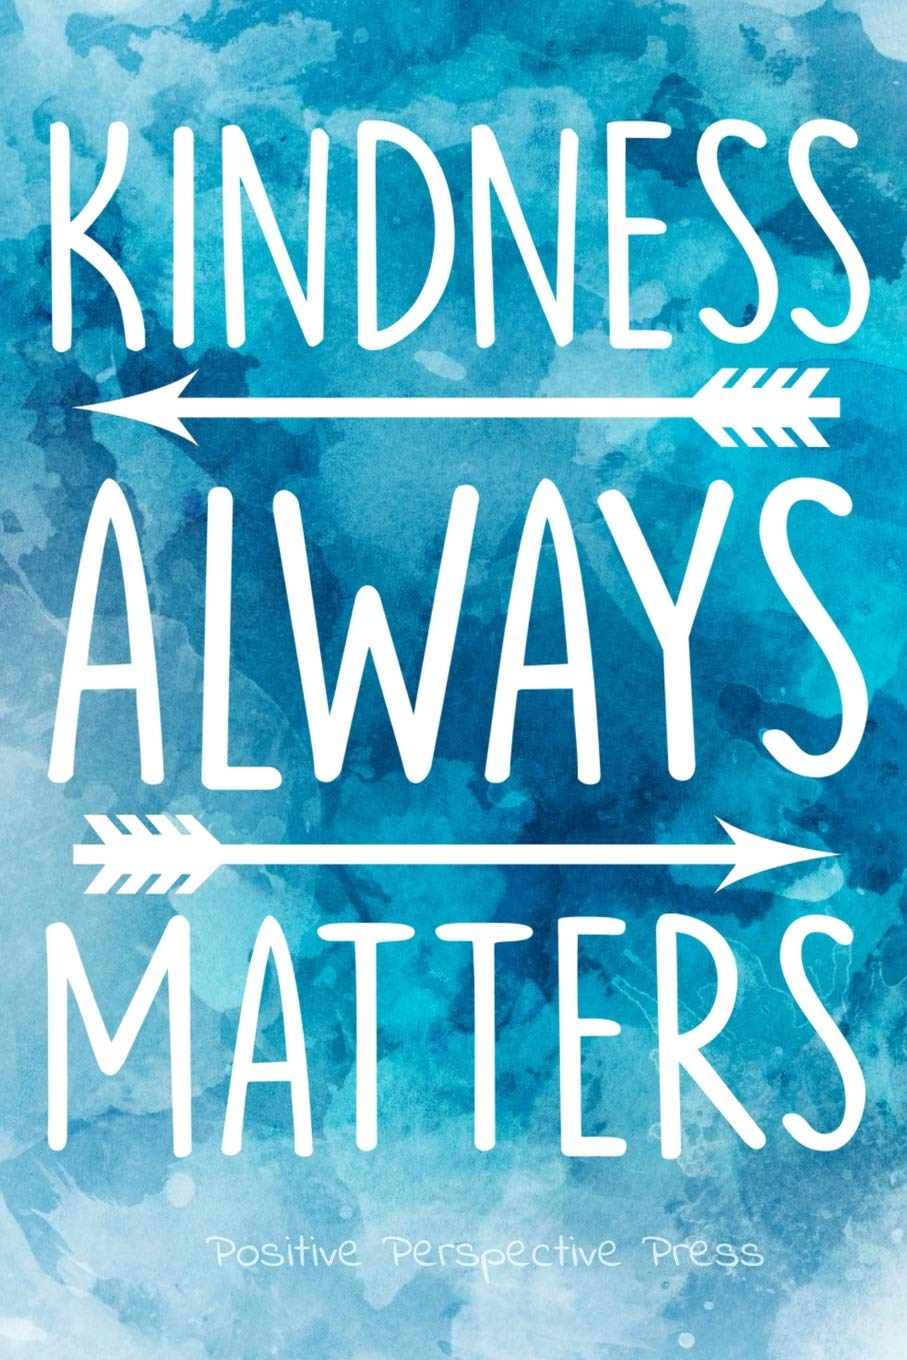 Kindness Always Matters Notebook Journal Positive Inspirational Quote For Women Girls 6x9 Inspirational Quotes Press Positive Perspective 9781090686350 Amazon Com Books